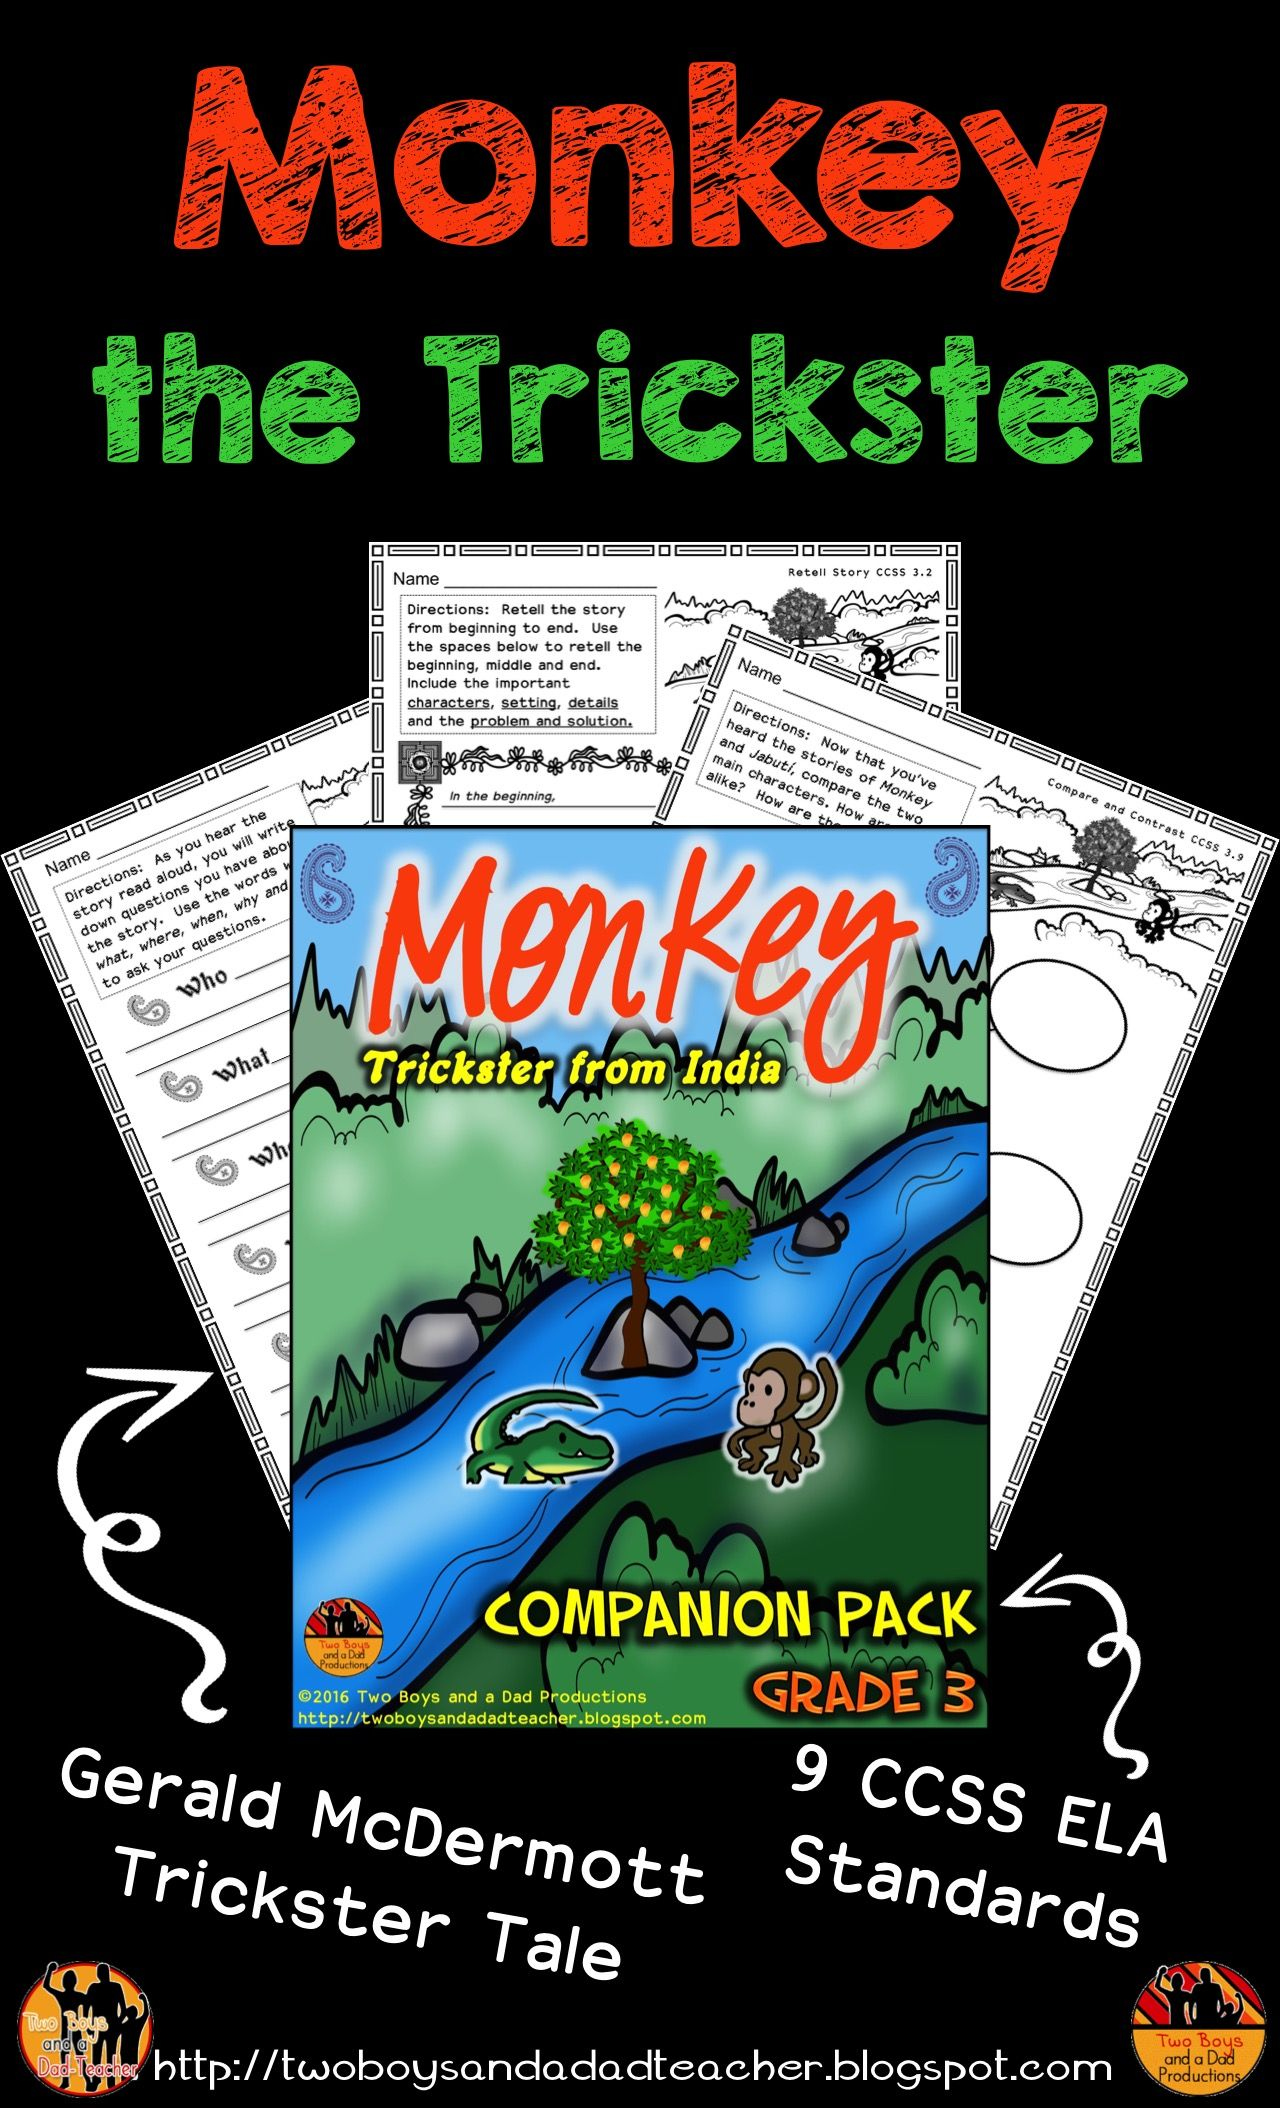 Monkey Trickster Tale From India Literature Standards